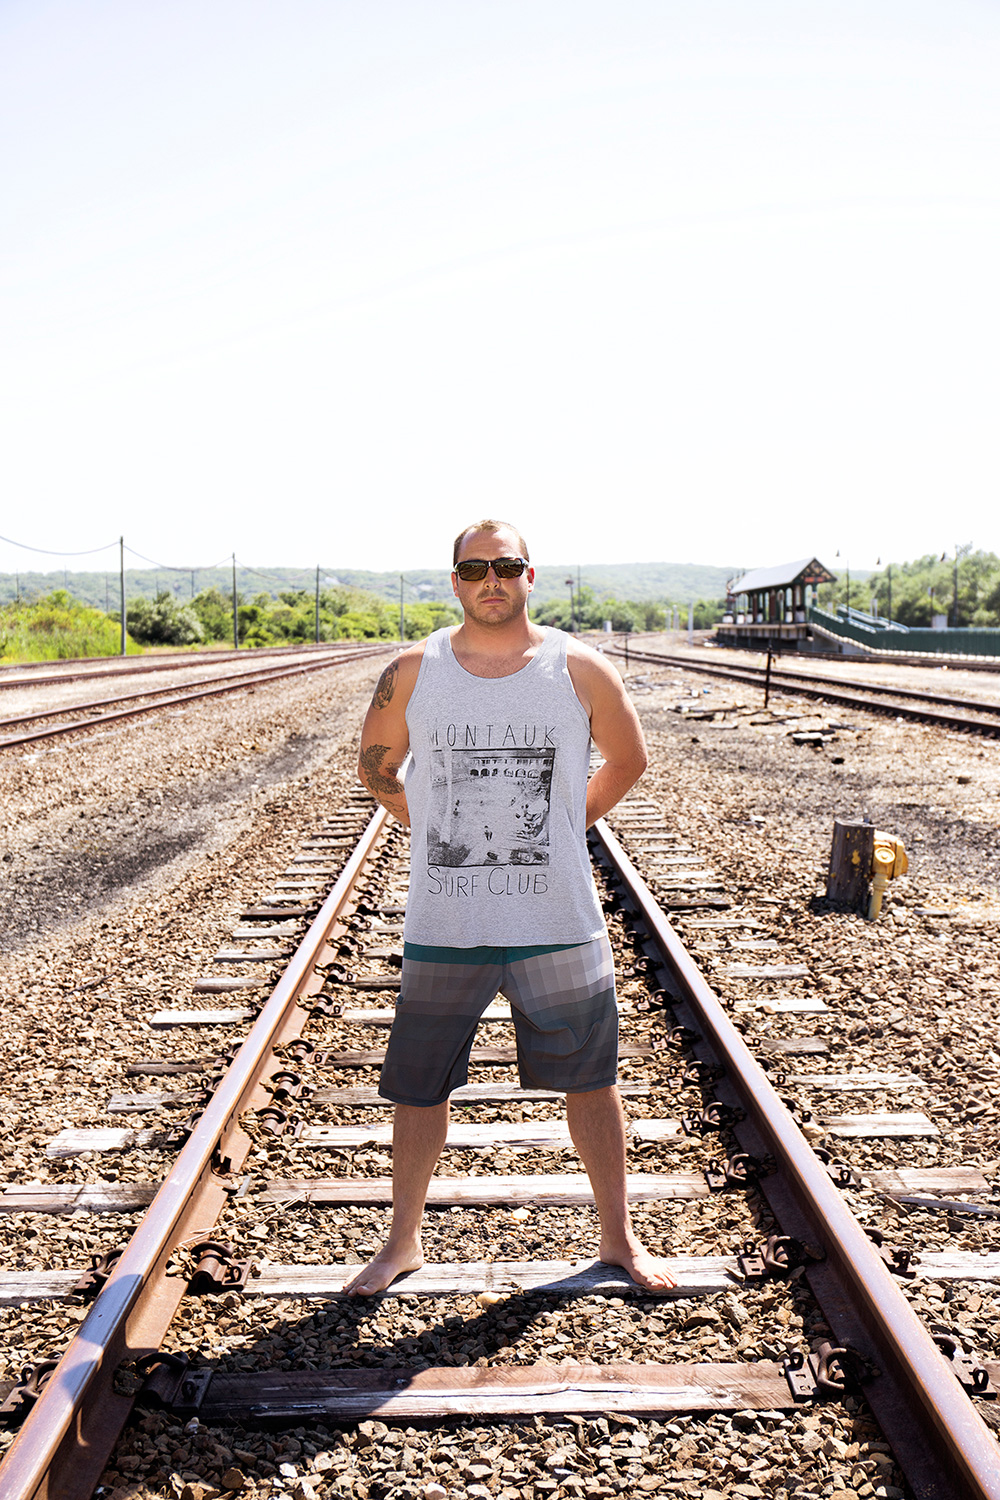 James Katsipis, Photographer, Filmmaker, End Of The Line, Long Island Railroad